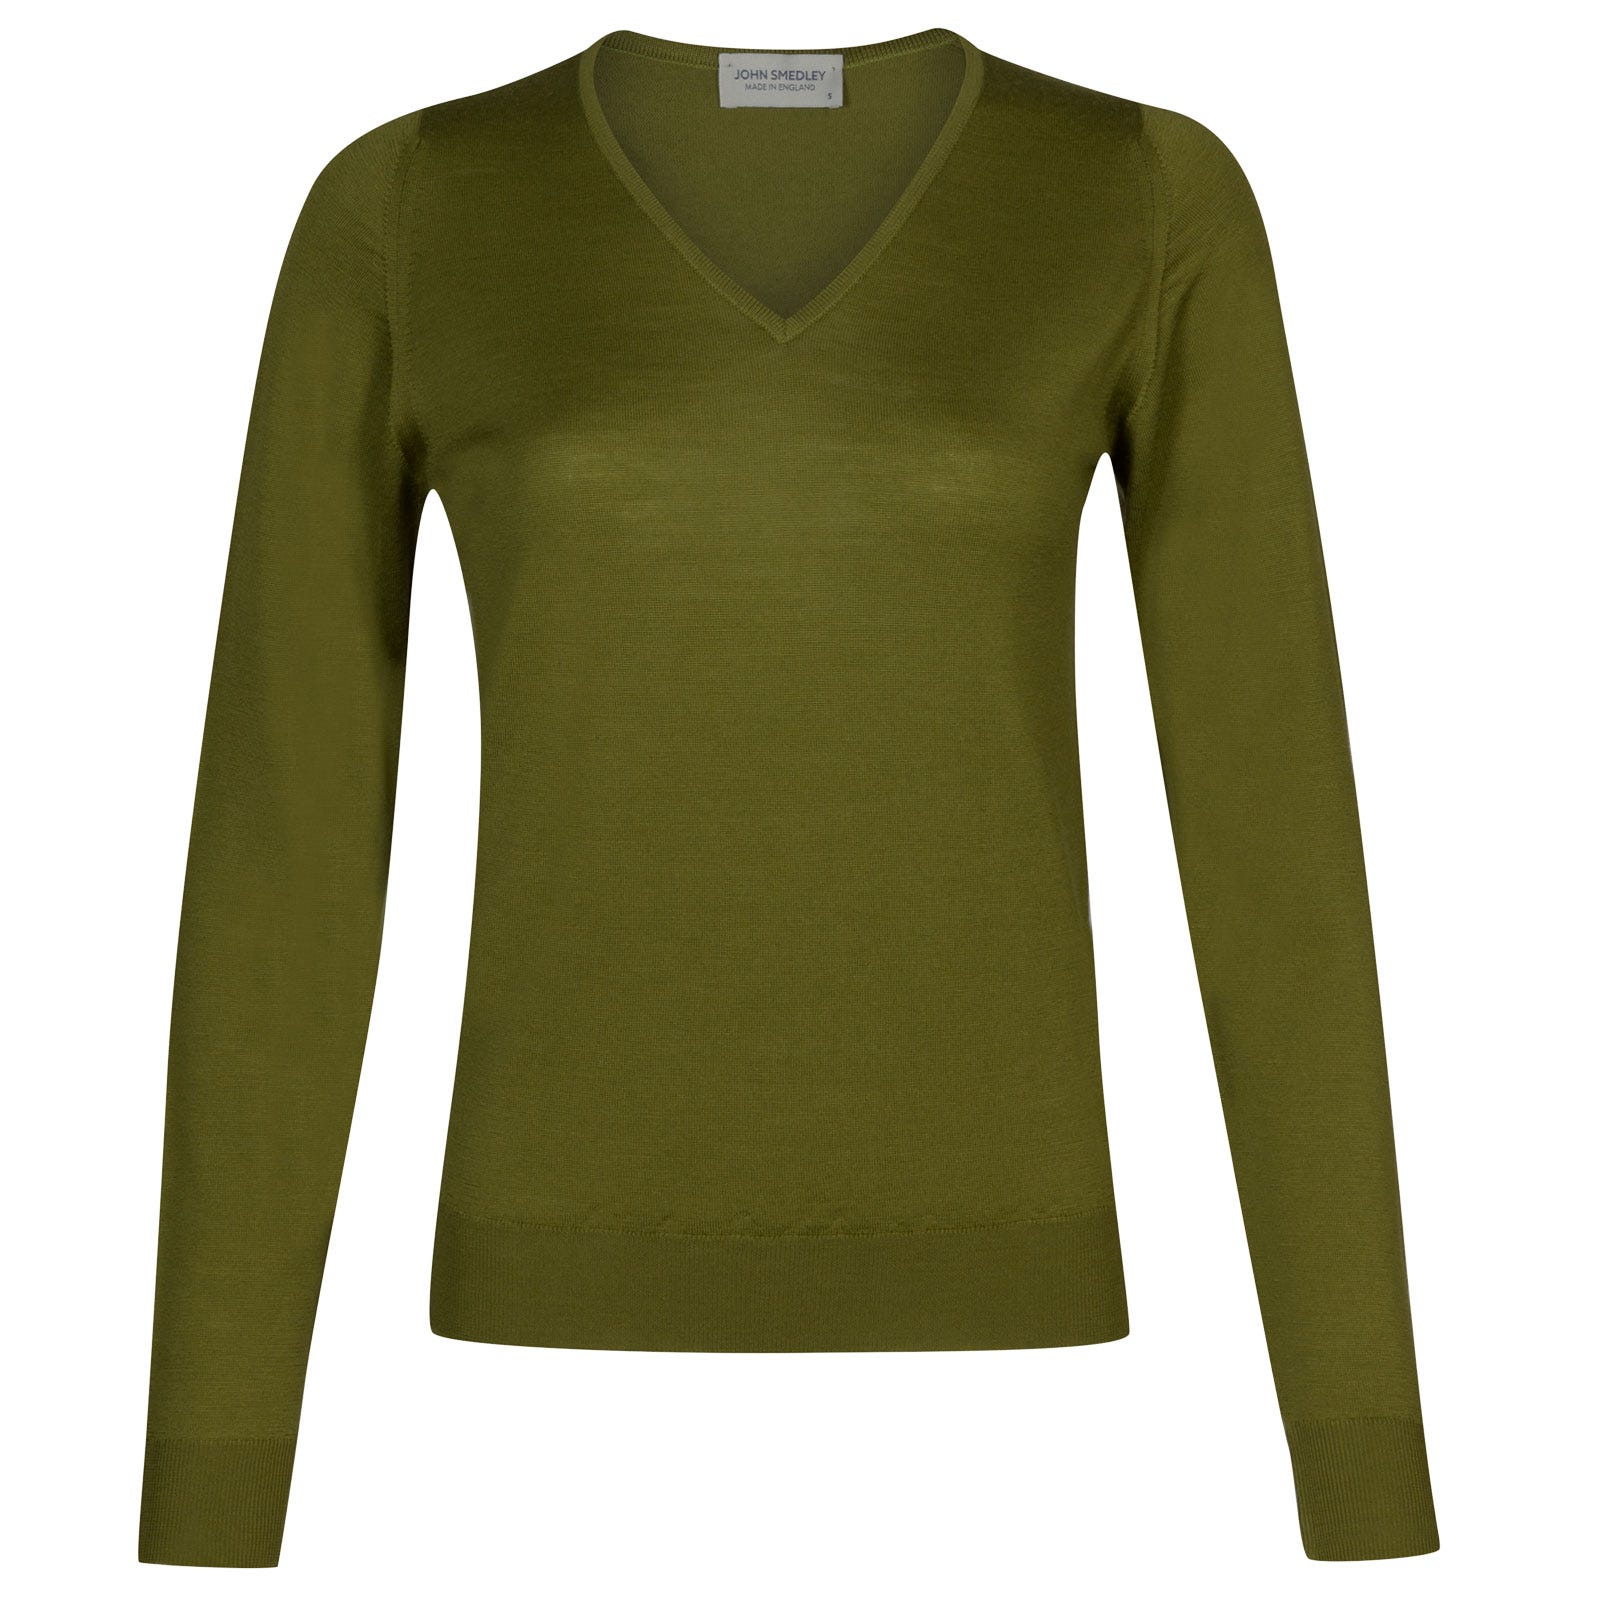 John Smedley manarola Merino Wool Sweater in Lumsdale Green-S